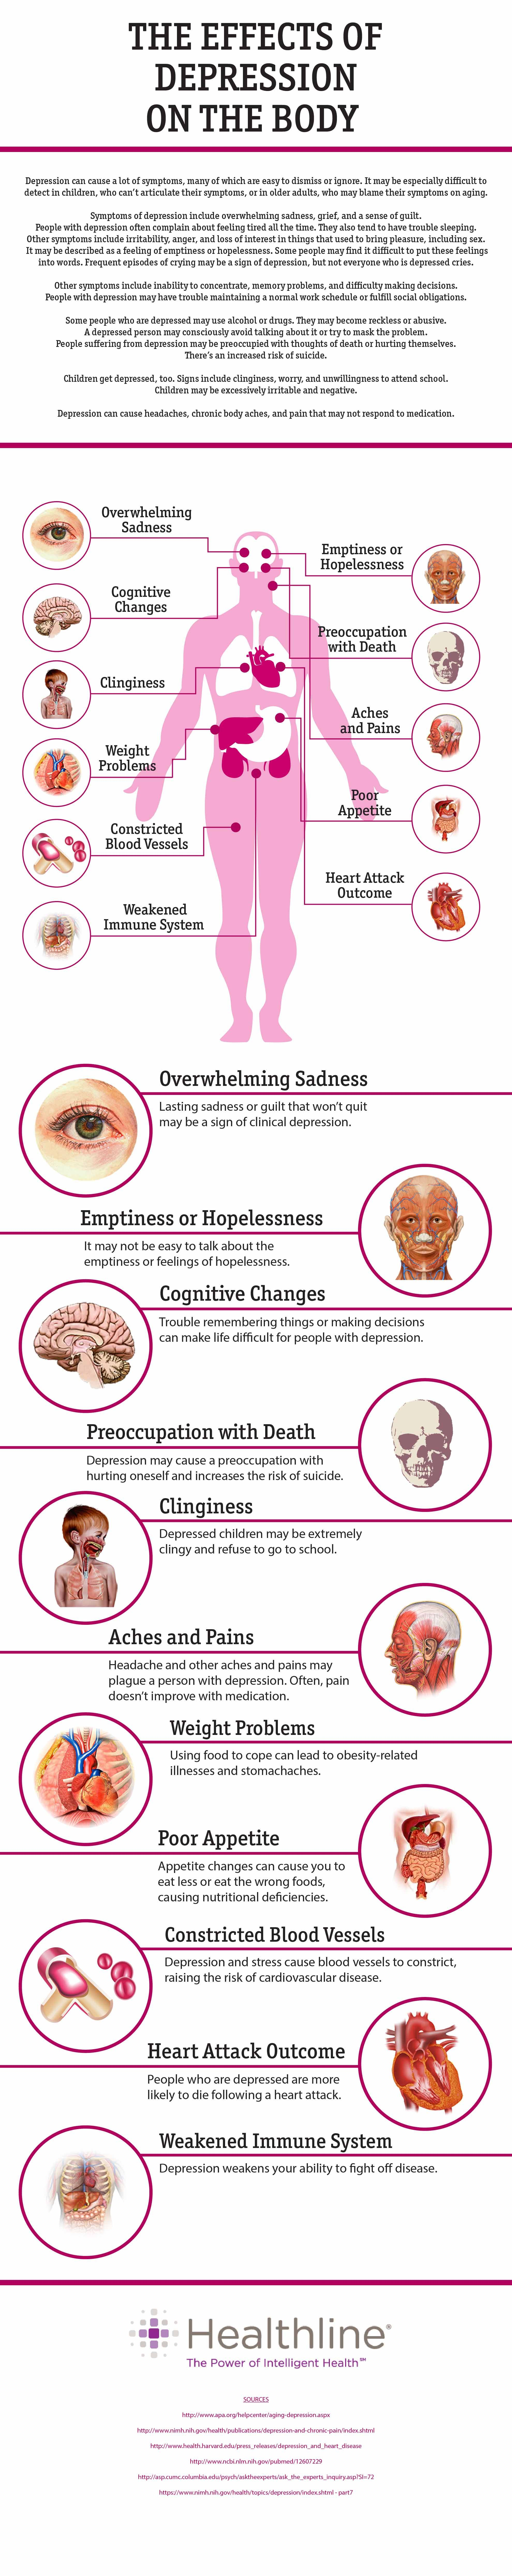 The Effects of Depression in Your Body | Pinterest | Bodies, Mental ...